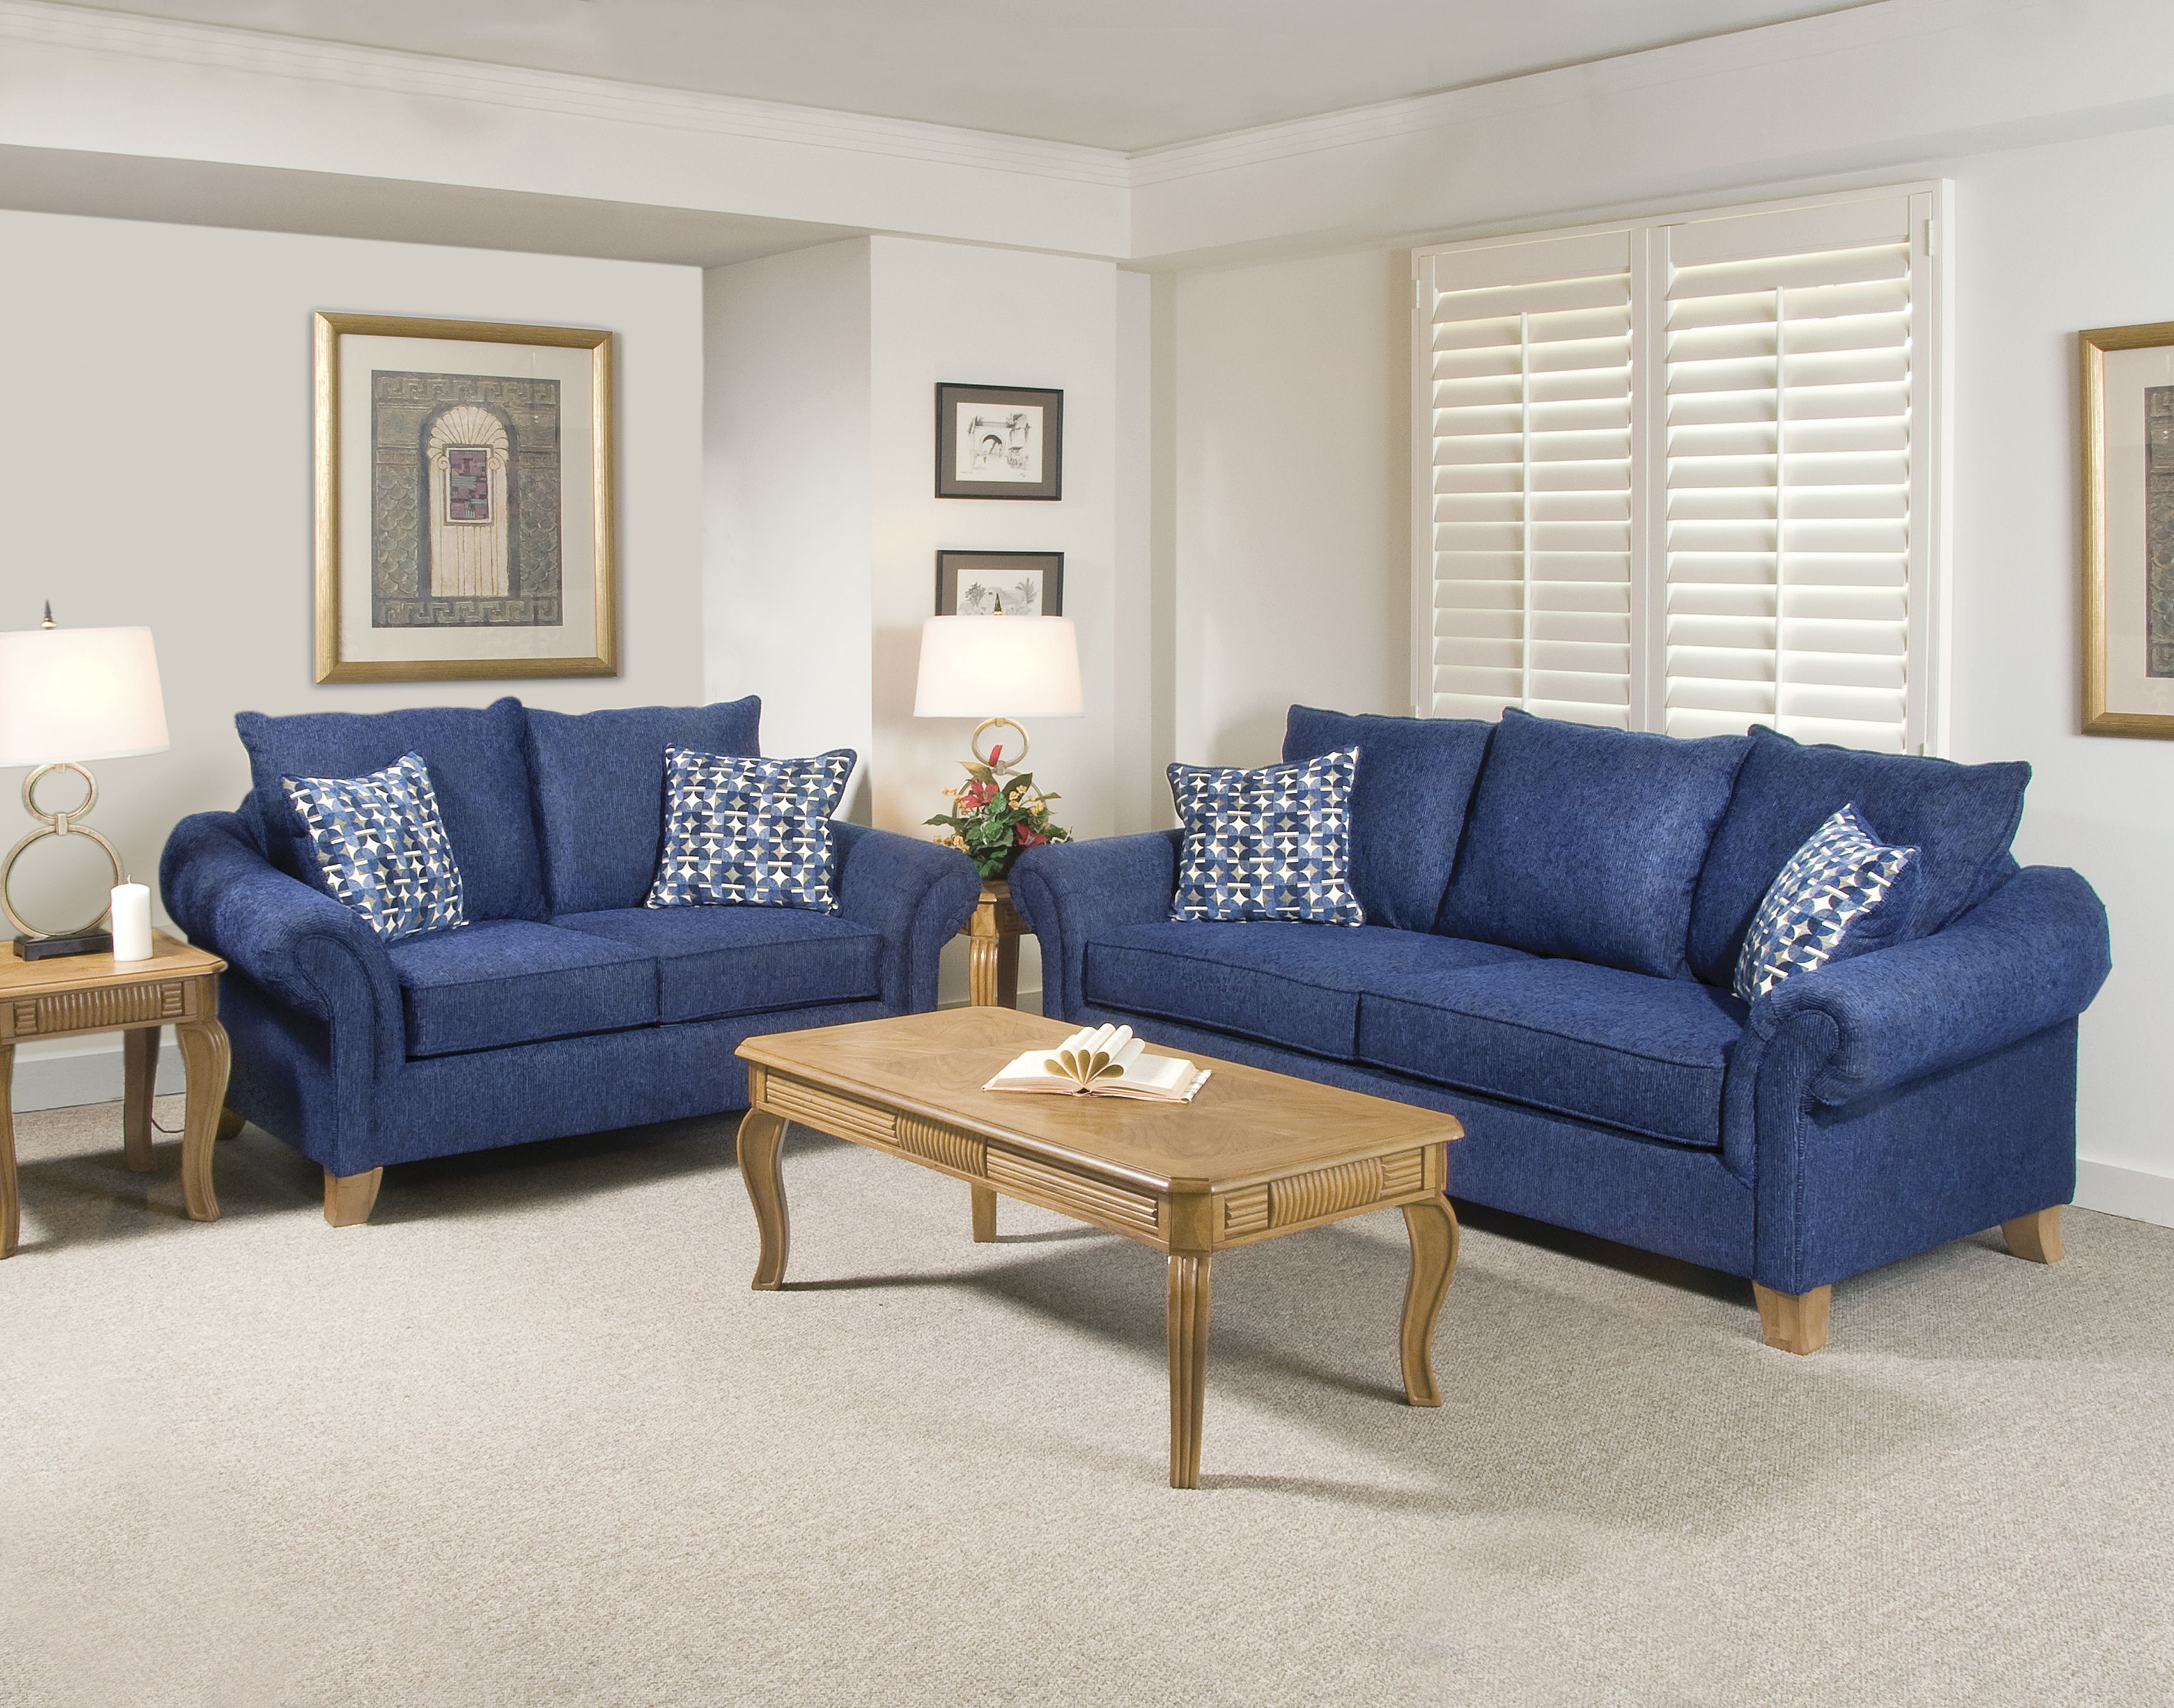 blue sofas living room paints - Navy Blue And Yellow Living Room Ideas